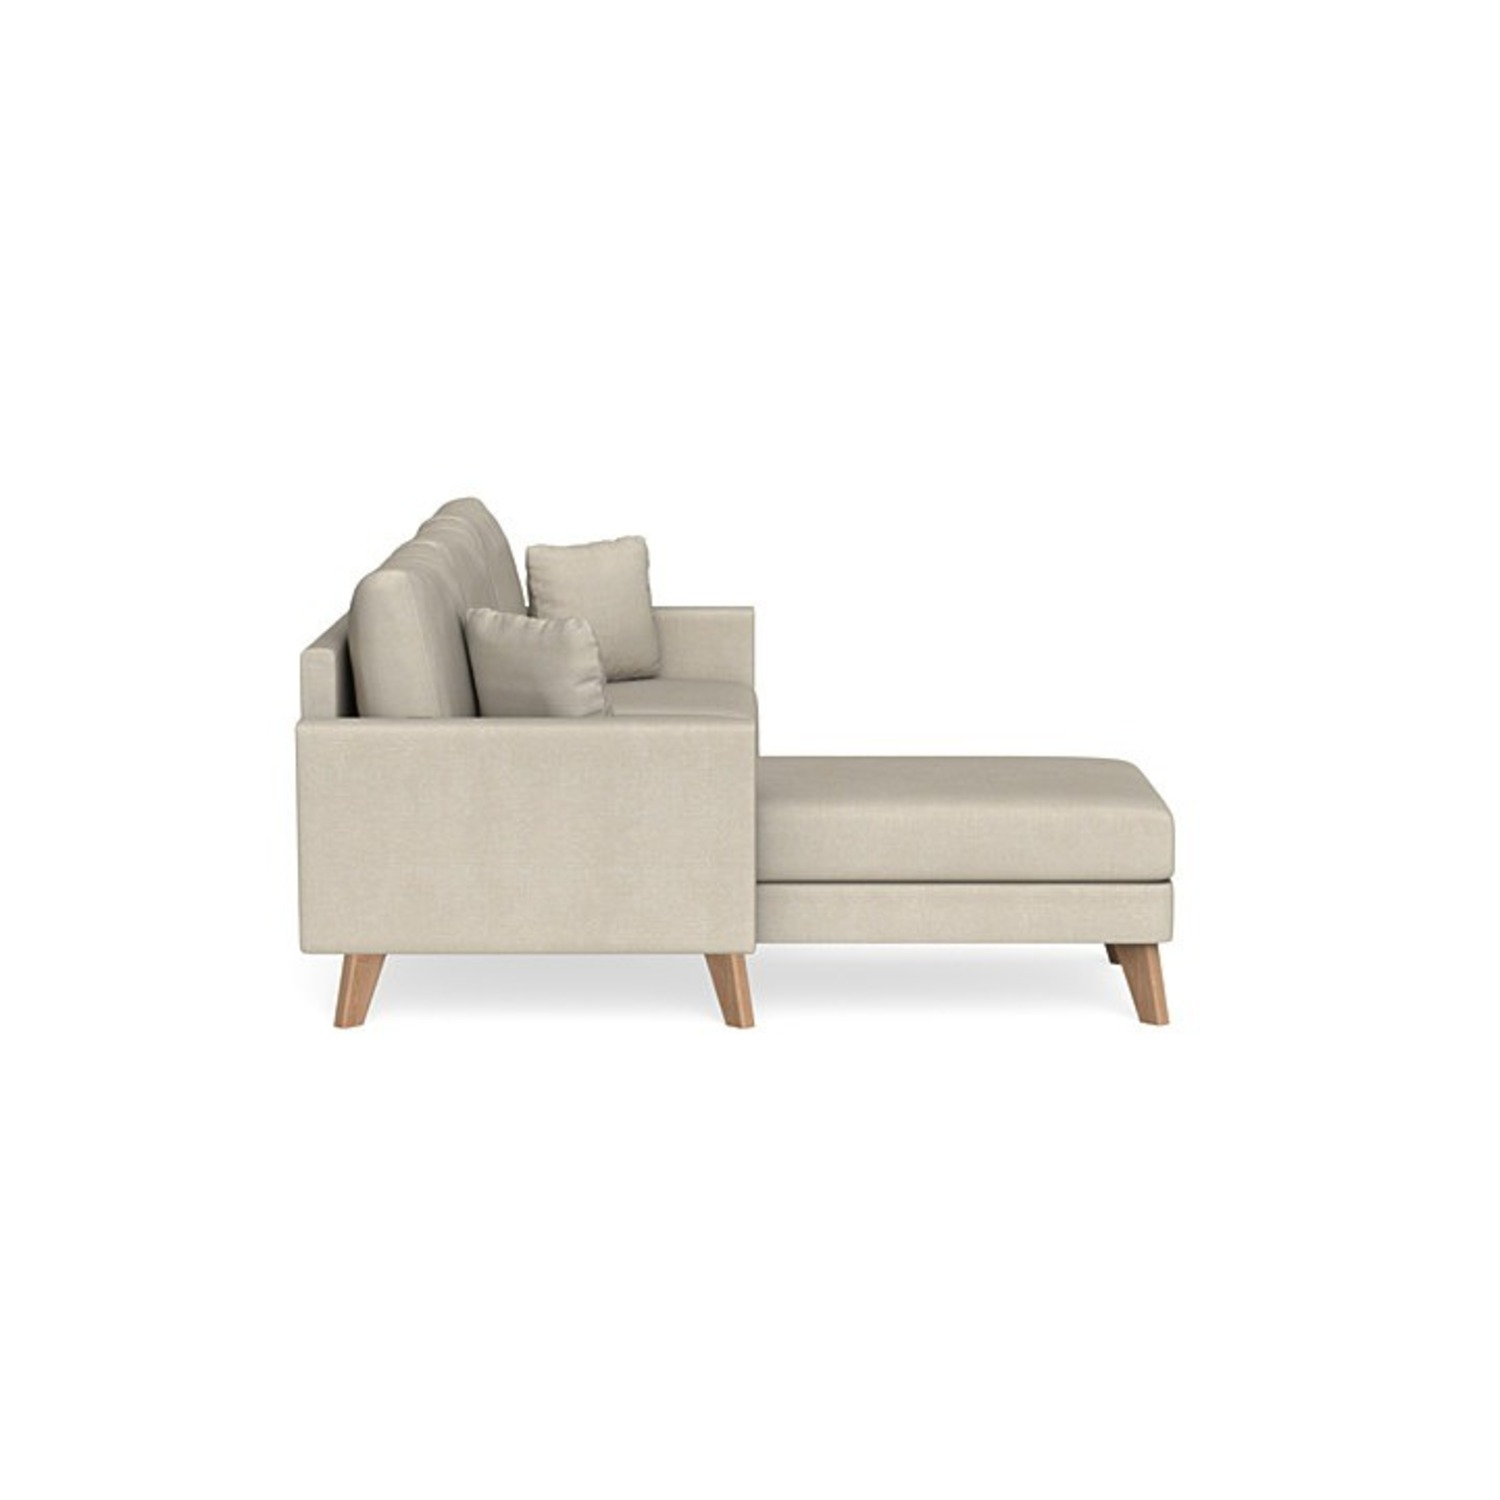 Inside Weather Custom Milo Sectional in Almond - image-3